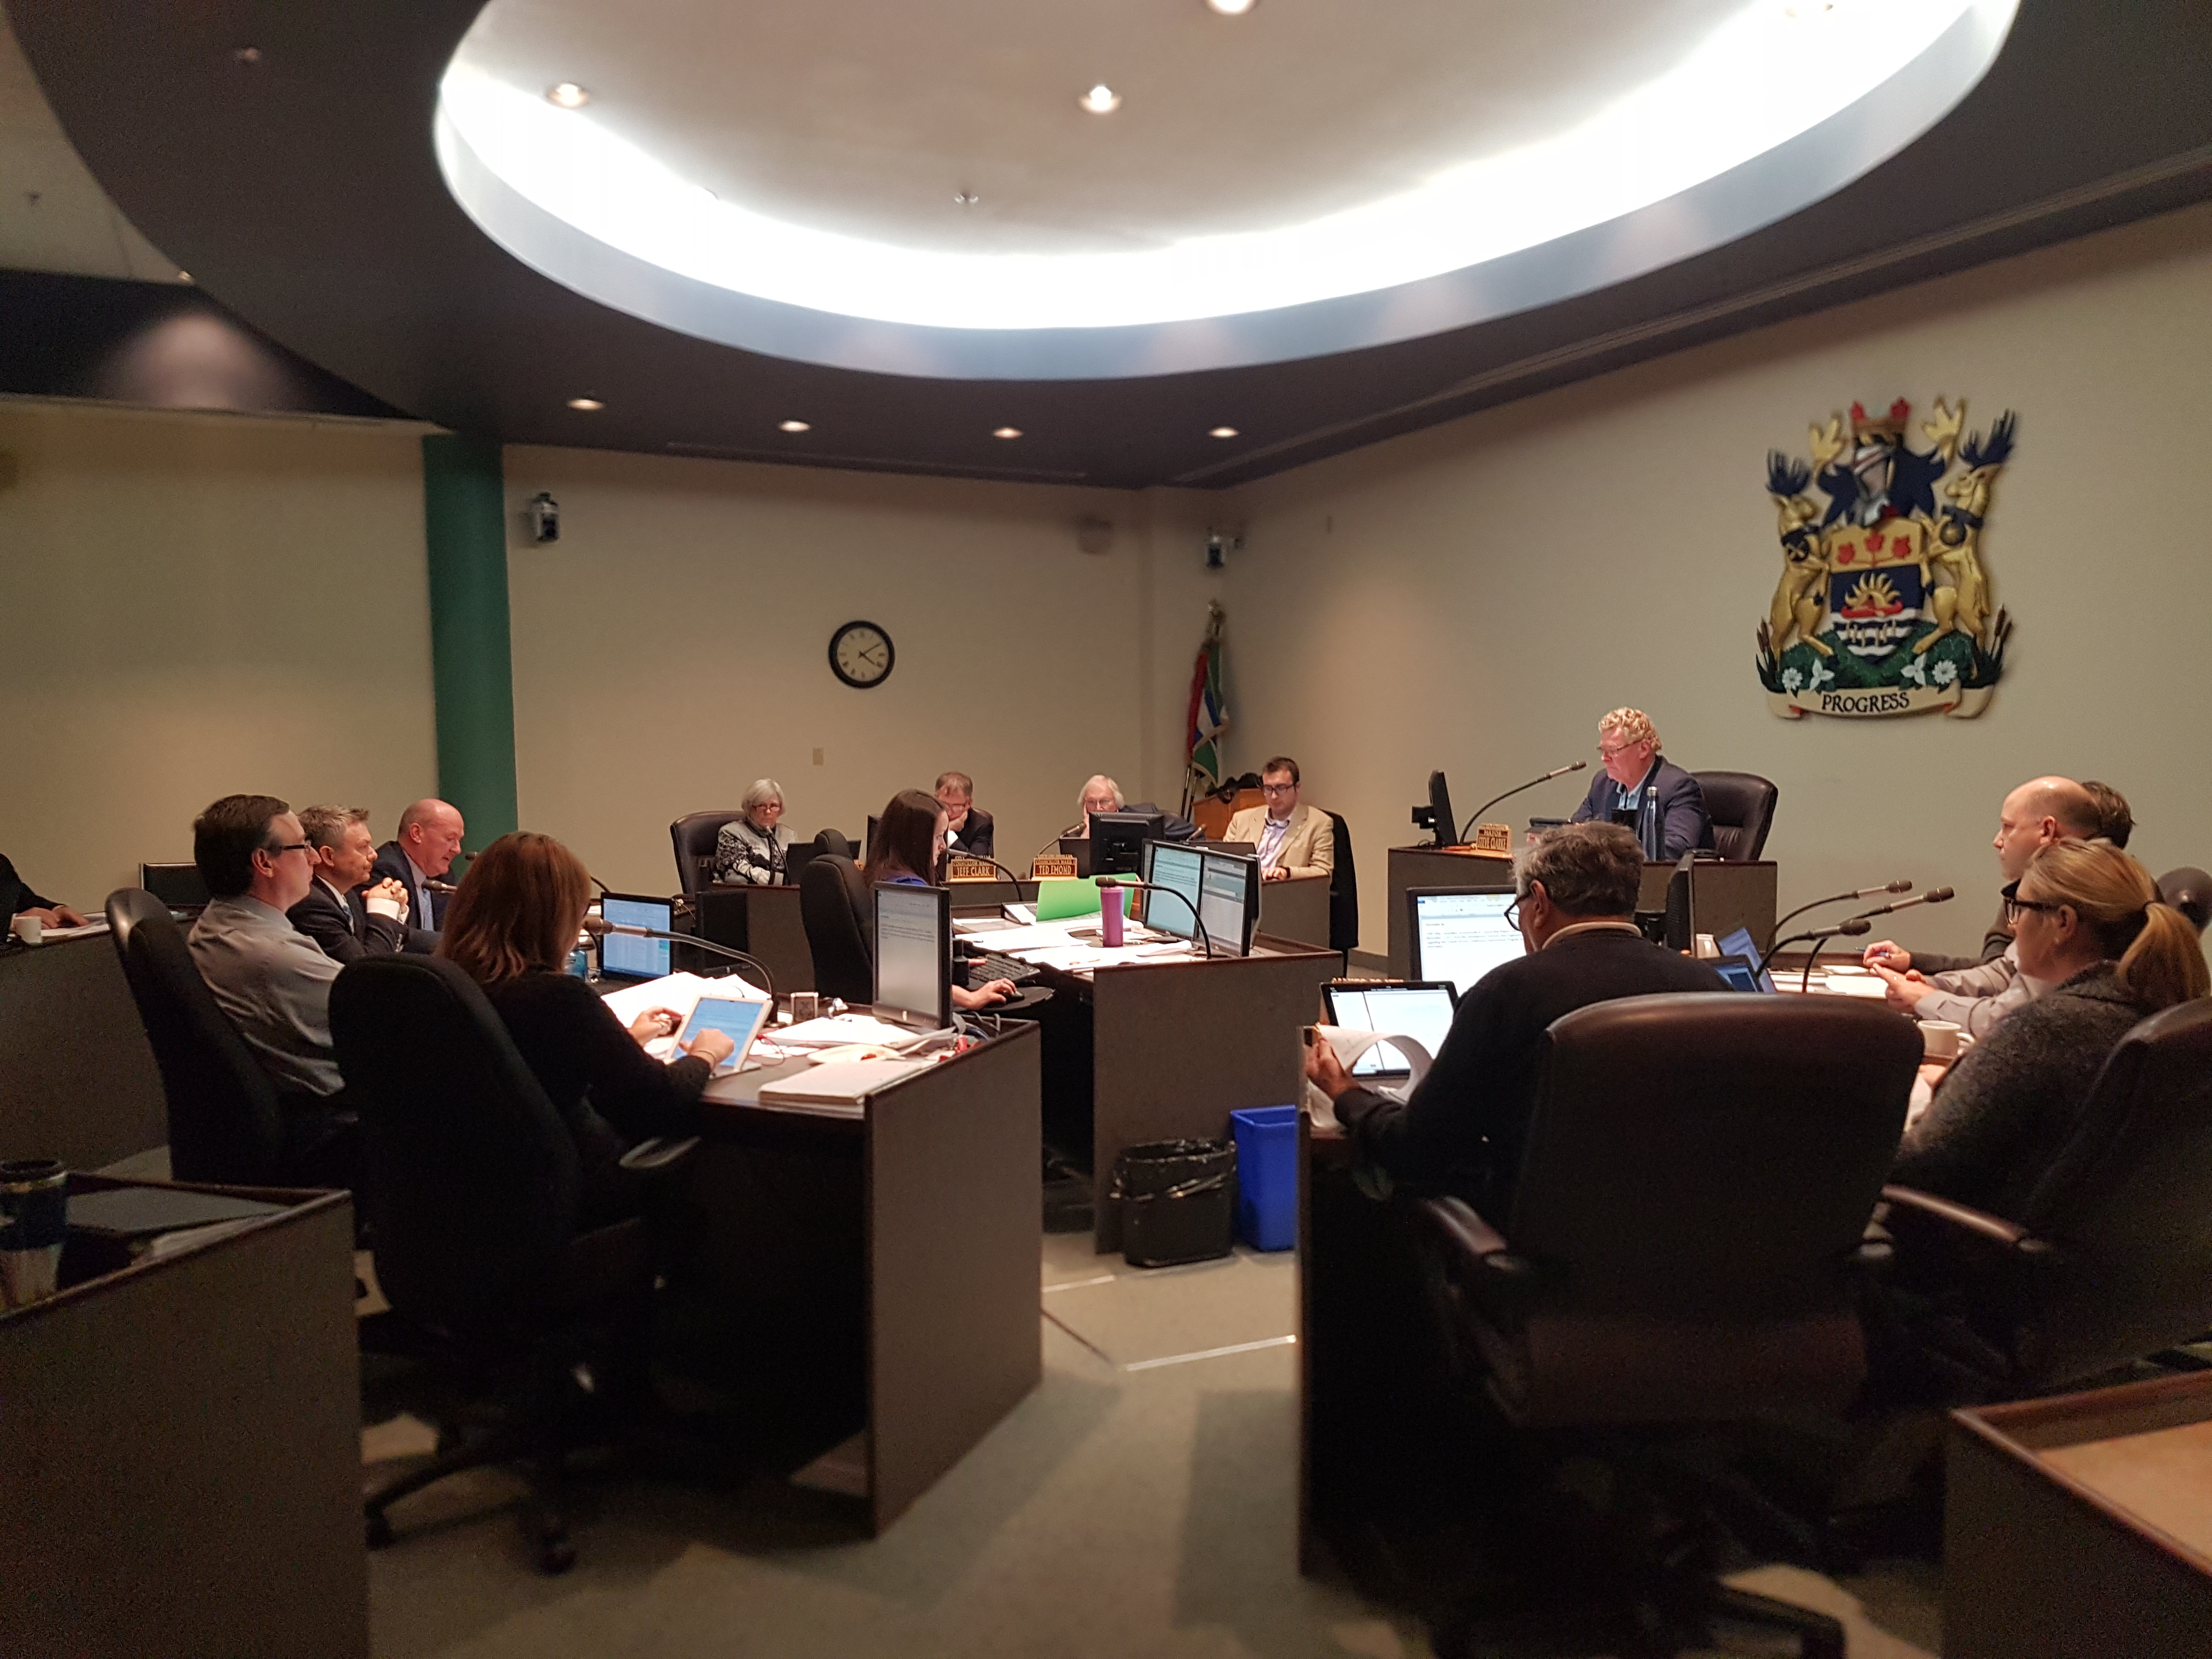 Budget Committee met on Nov. 14, 2017, for the initial 2018 budget presented by City staff.